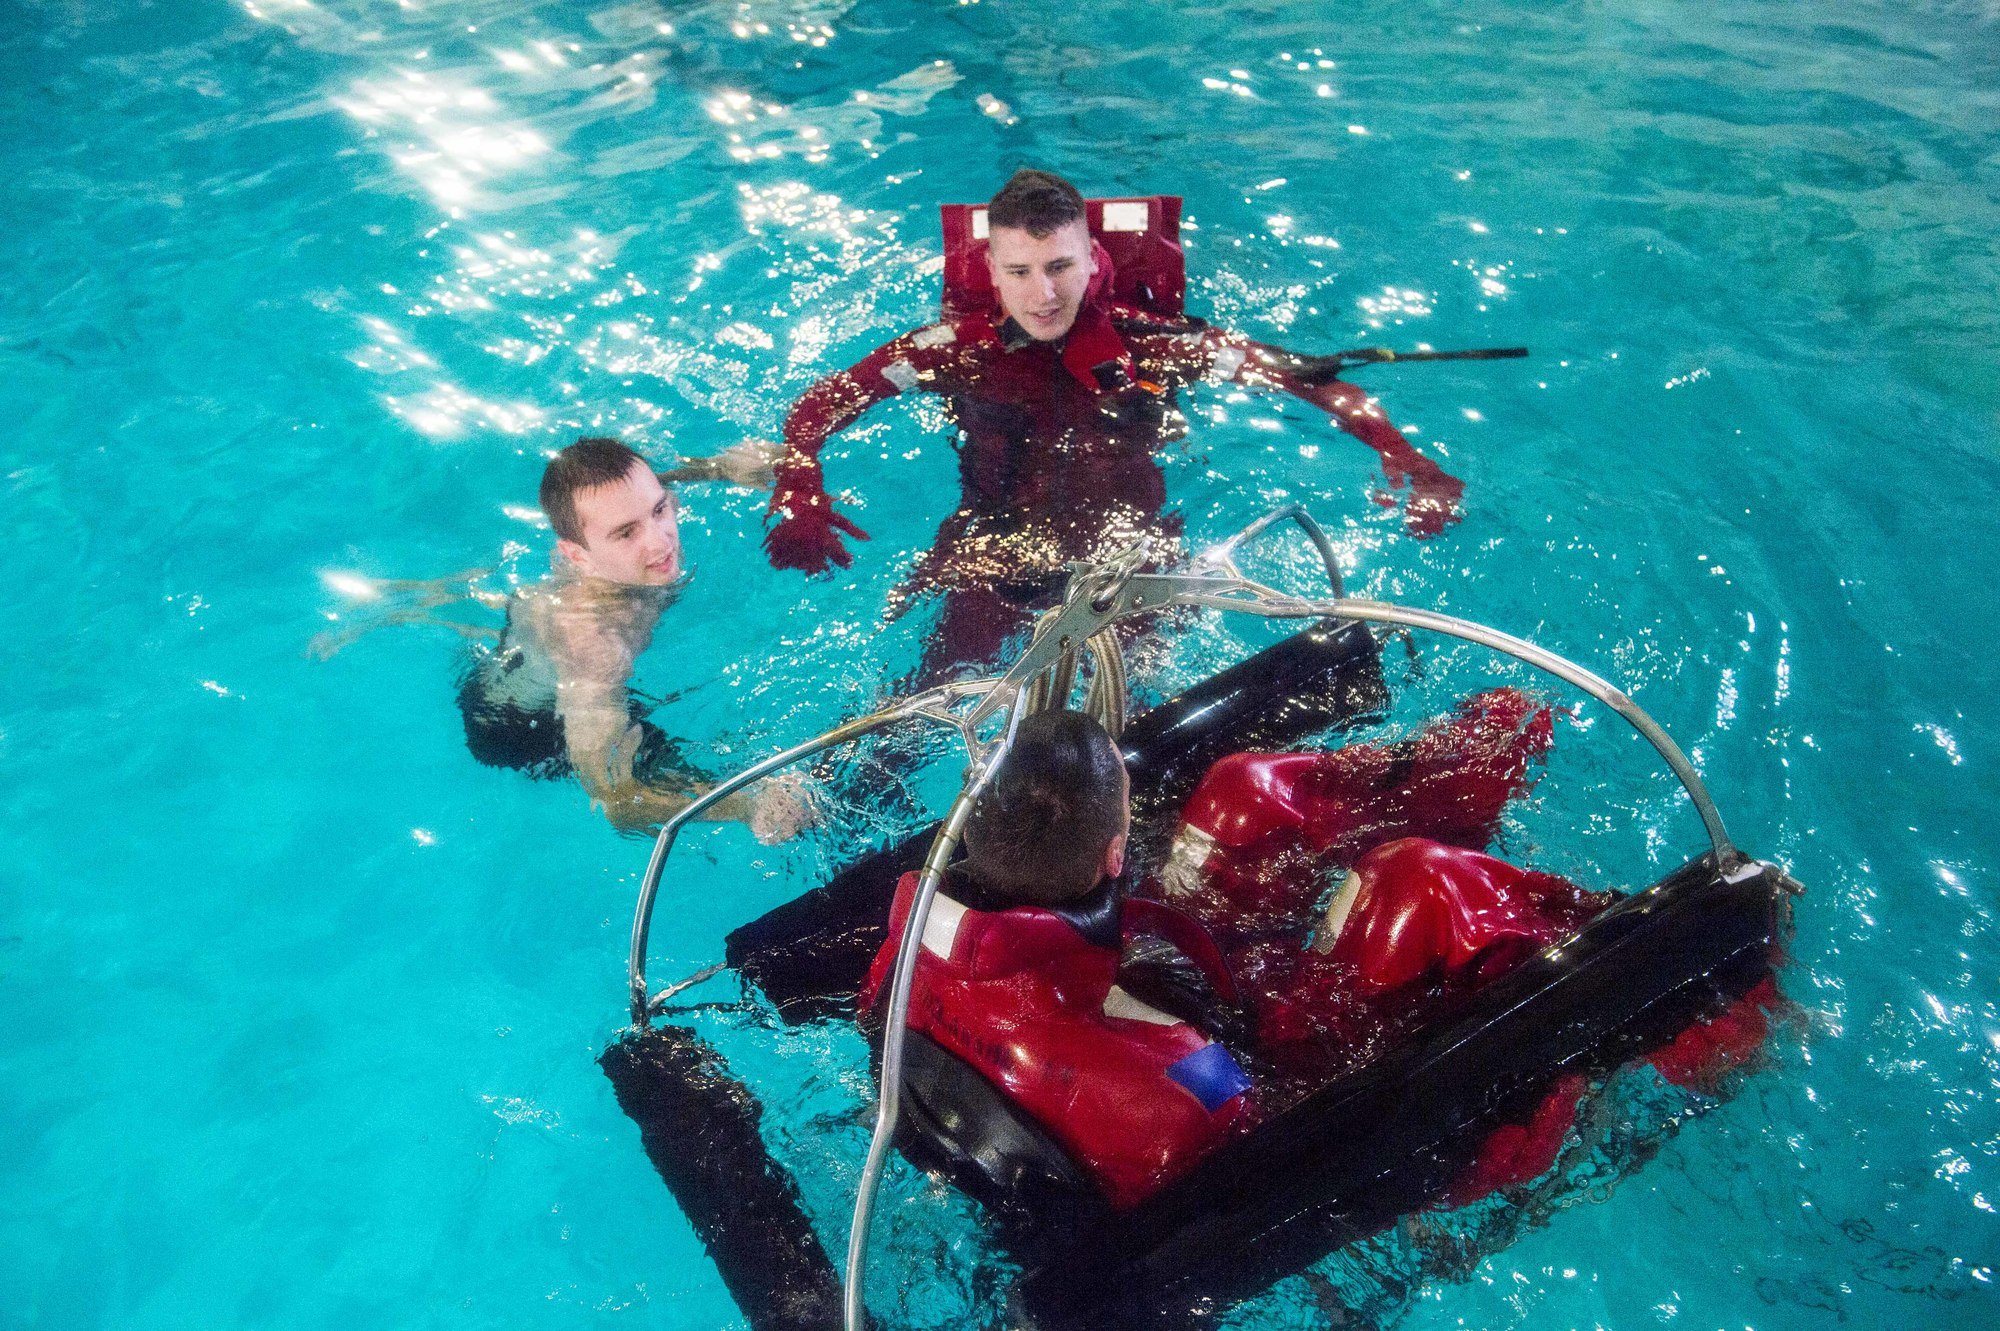 Coast Guard Academy Mechanical Engineering cadets test out their new rescue basket design at a local simulator facility, April 18, 2018.